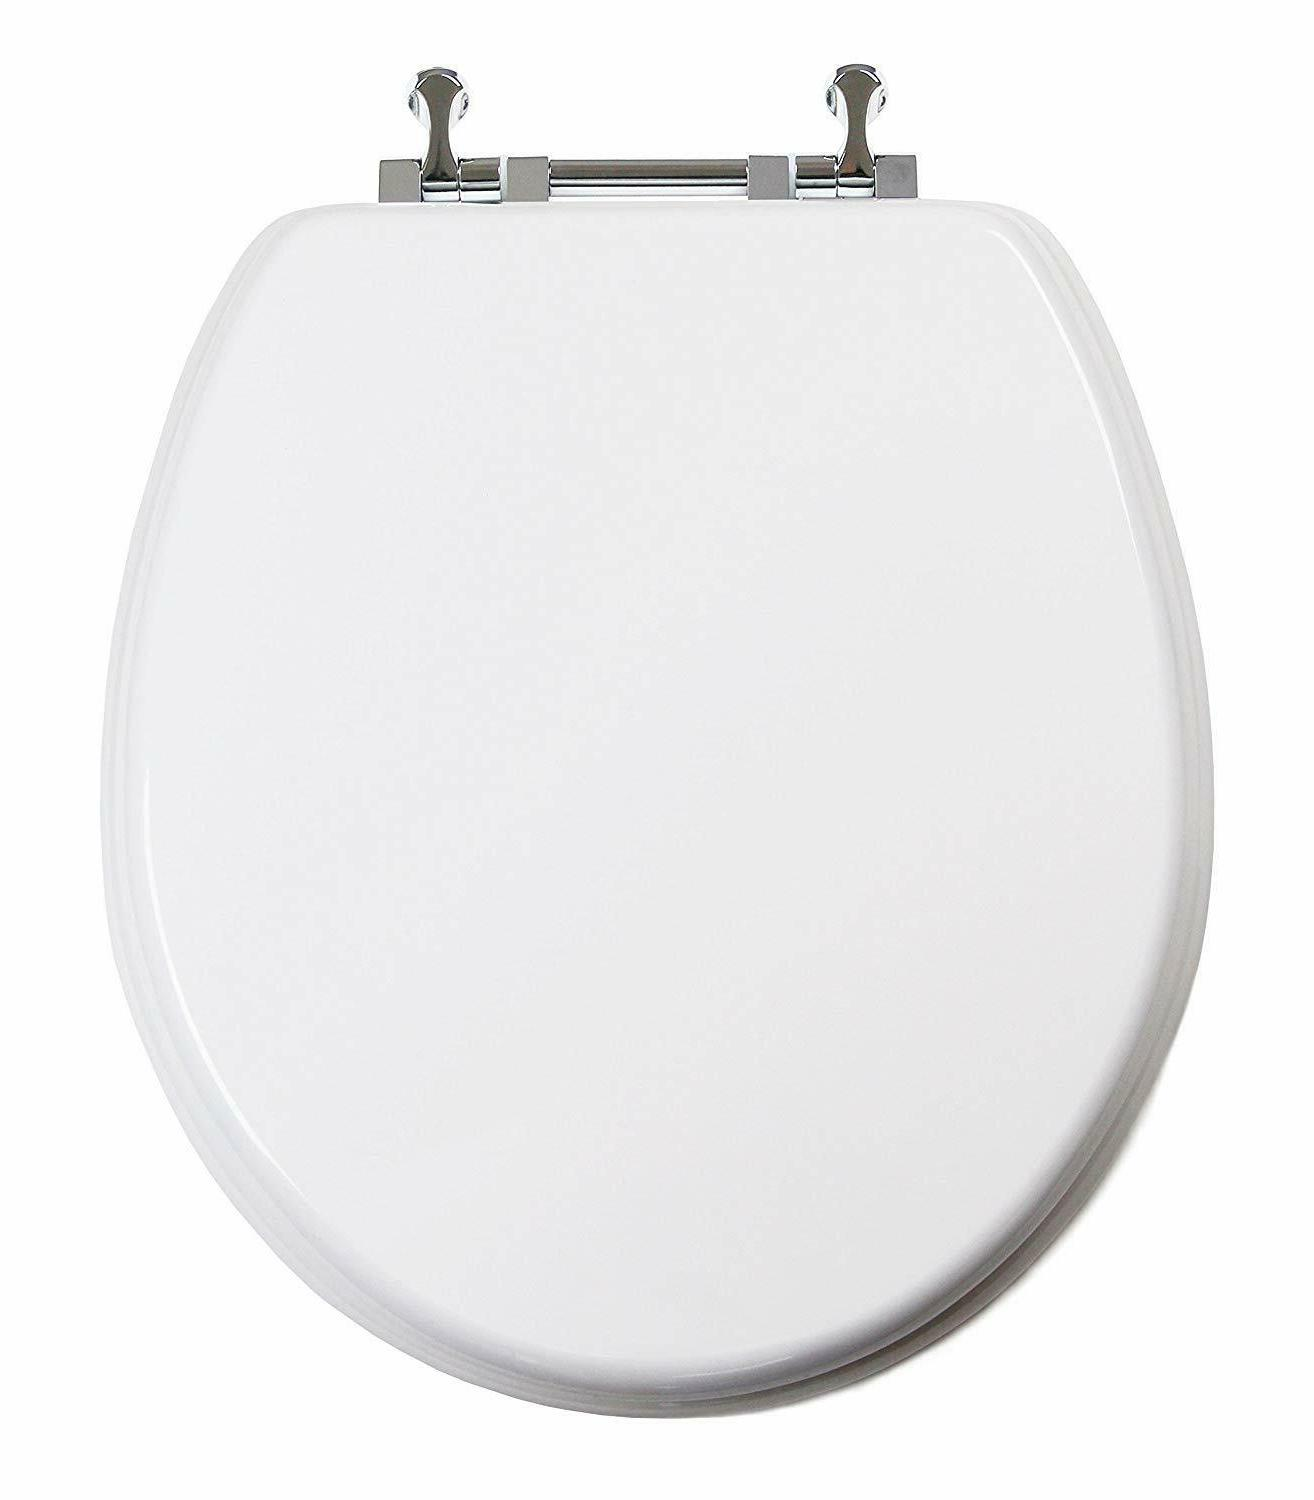 TinyHiney Toilet Seat, w/Chromed Metal Hinges